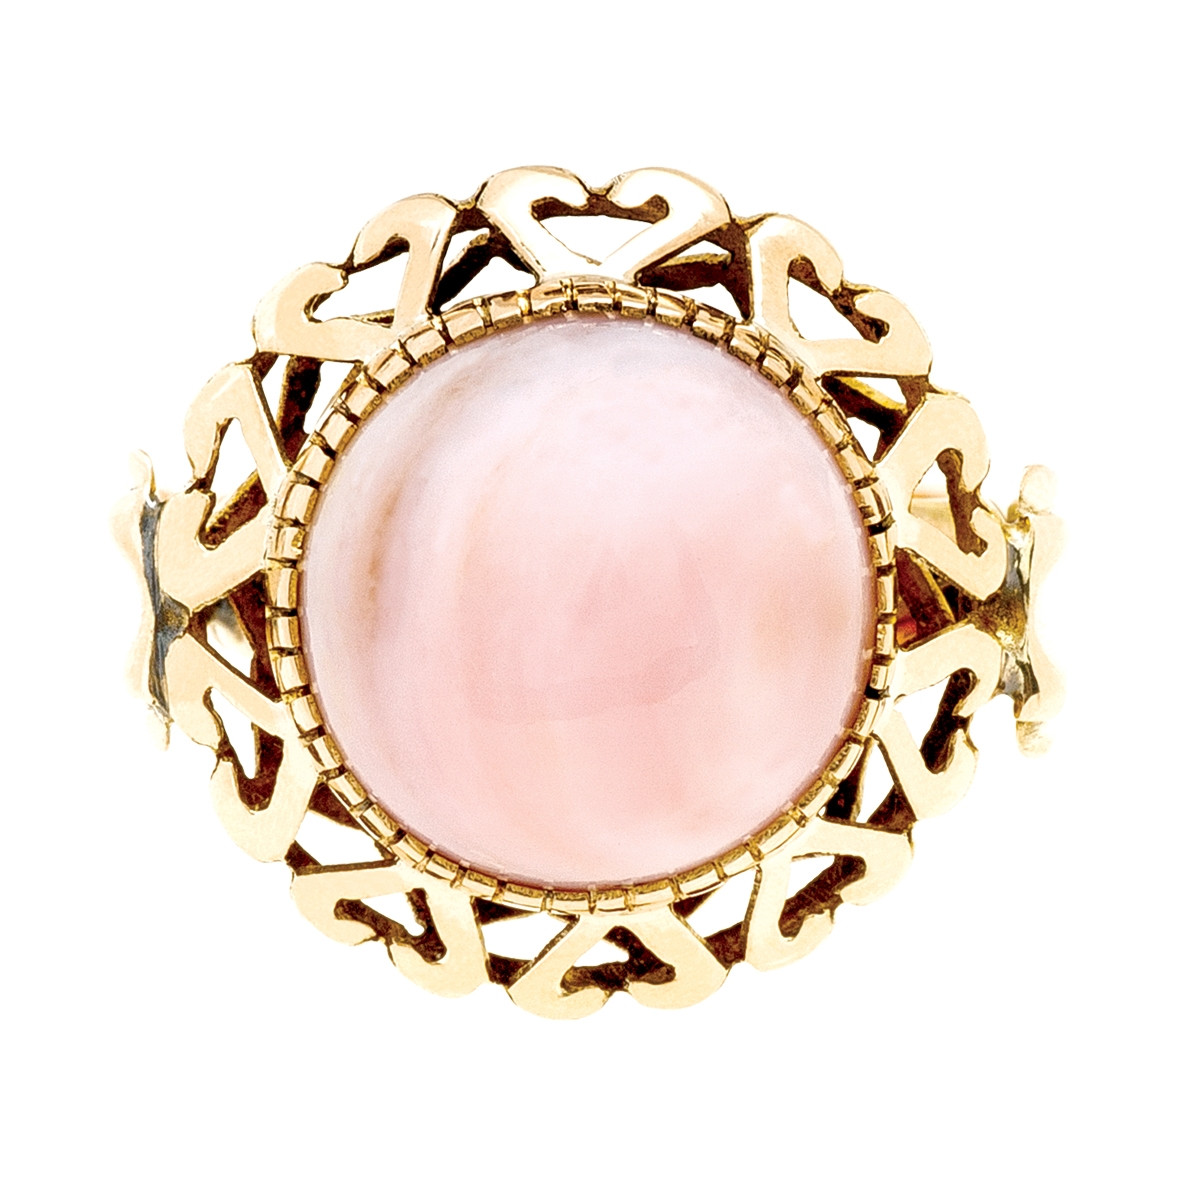 Vintage 7.00 CT Pink Opal Halo Ring